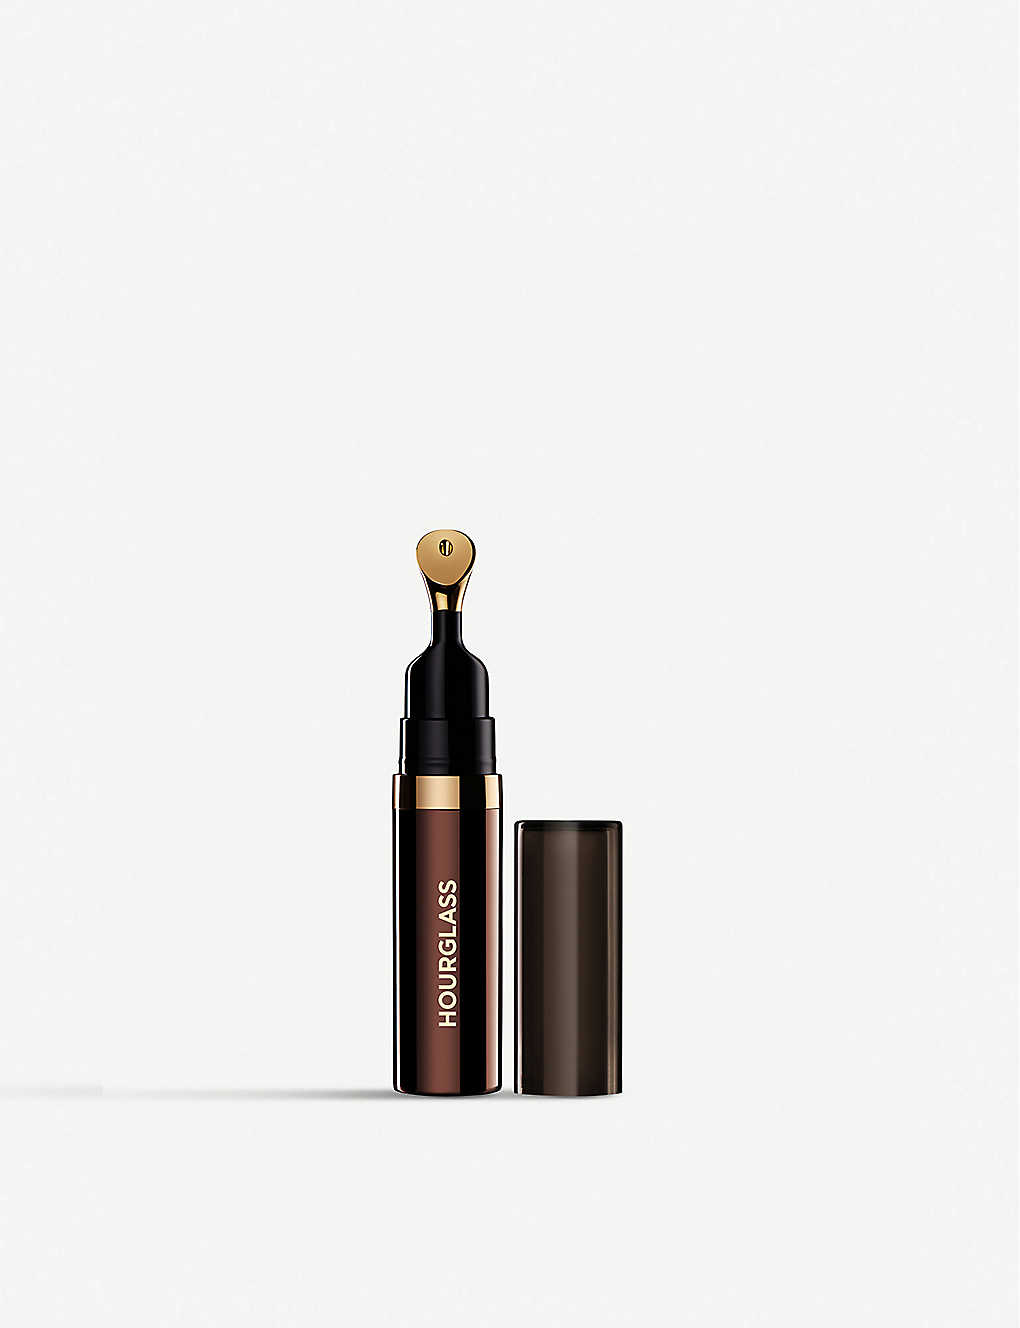 HOURGLASS: Nº 28 lip treatment oil 7.5ml